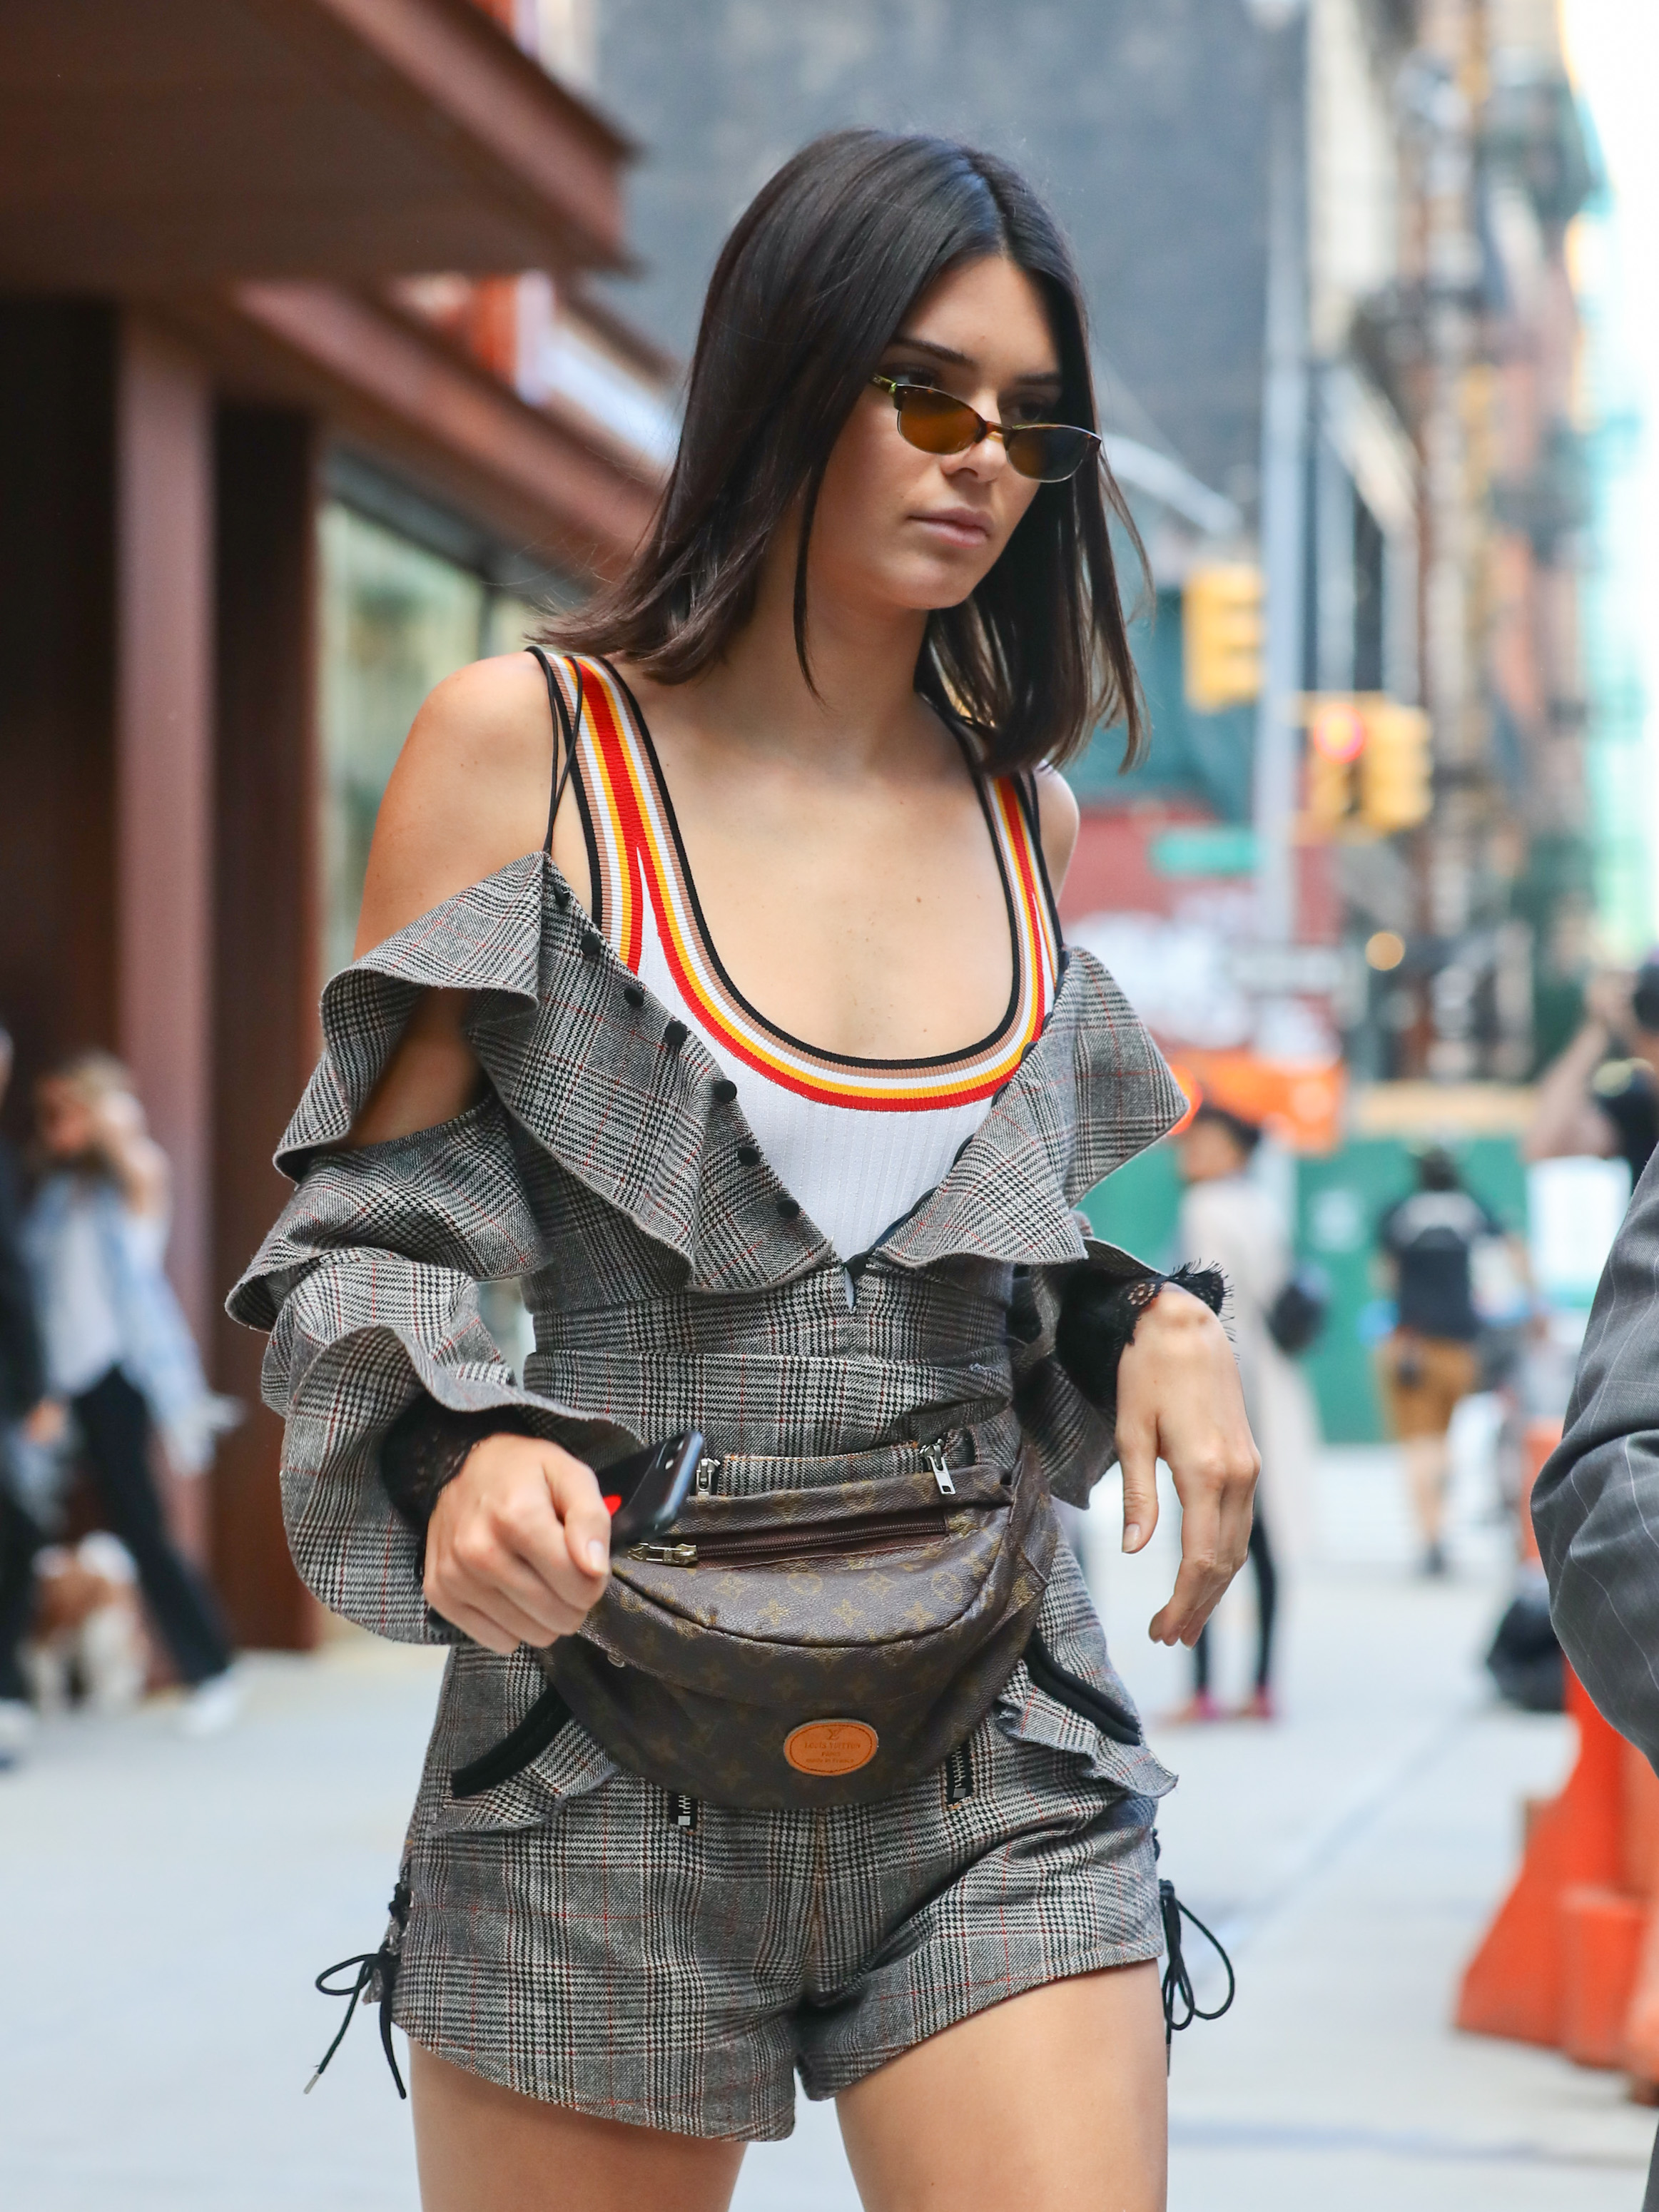 <p>Kendall Jenner is on a one-woman mission to bring back the fanny back and make bum bags great again.</p> <p>Right before her polished appearance at the Veuve Clicquot Polo Classic in New York, the supermodel took to the streets with her favourite accessory around her waist.</p> <p>This time Kendall selected a Louis Vuitton number but on June 1 she took to the streets with a chic Chanel offering. The day before it was Chanel too. That's three bum bags in three days, so it's official. They're back.</p> <p>Designers such as Alessandro Michele at Gucci have been giving us runway reminders of the bum bags convenience, especially in an age when you need your hands free for important things, such as taking selfies.</p> <p>At Mercedes-Benz Fashion Week Australia Alice McCall showed an evening version in feathers but we prefer to top our bottoms with sleek sporty styles. </p> <p>Click ahead to find your new best friend.</p> <p> </p>